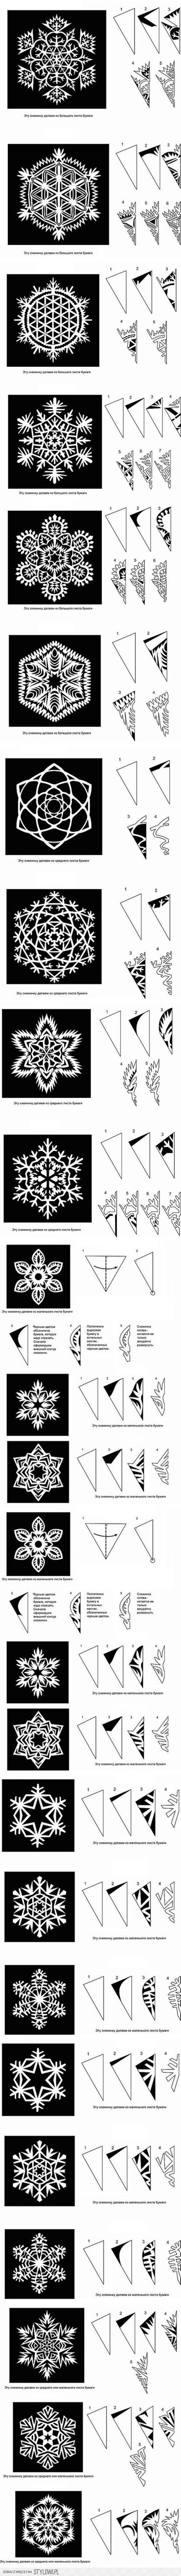 #Paper_Snowflake Patterns. Quite Intricate #Christmas_Crafts